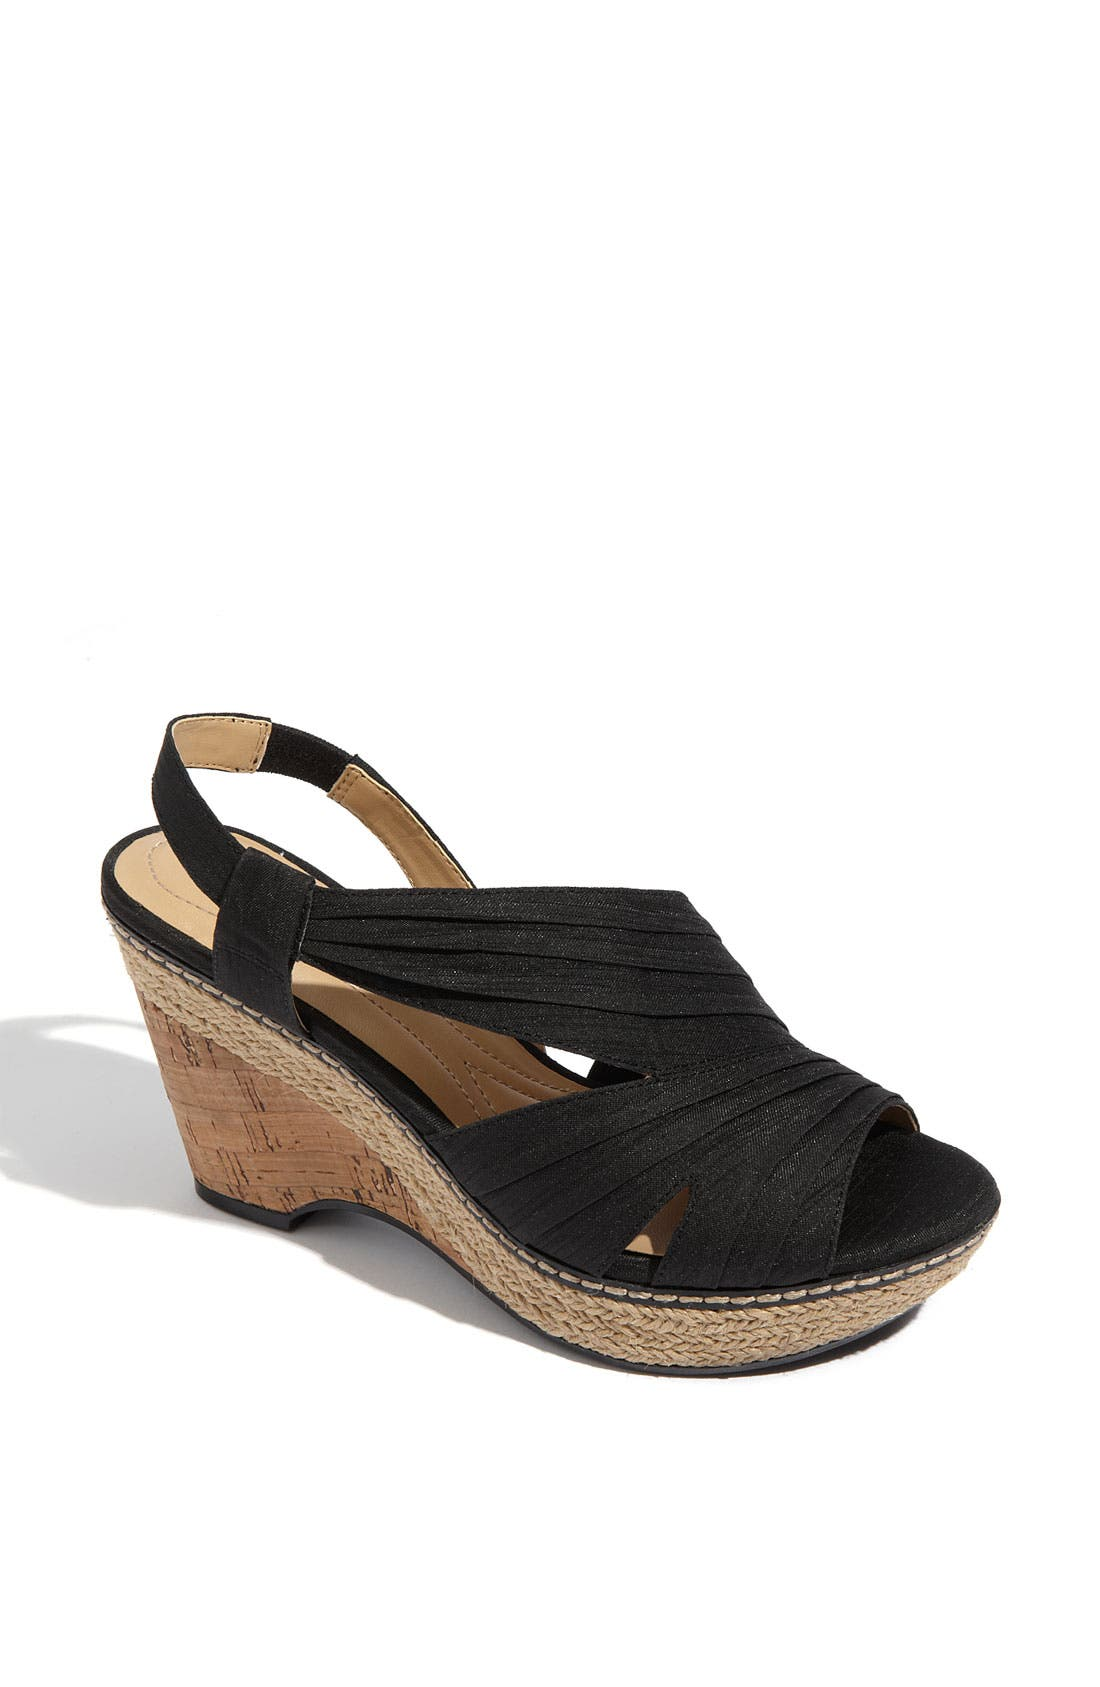 Main Image - NATURALIZER LULIANNA WEDGE